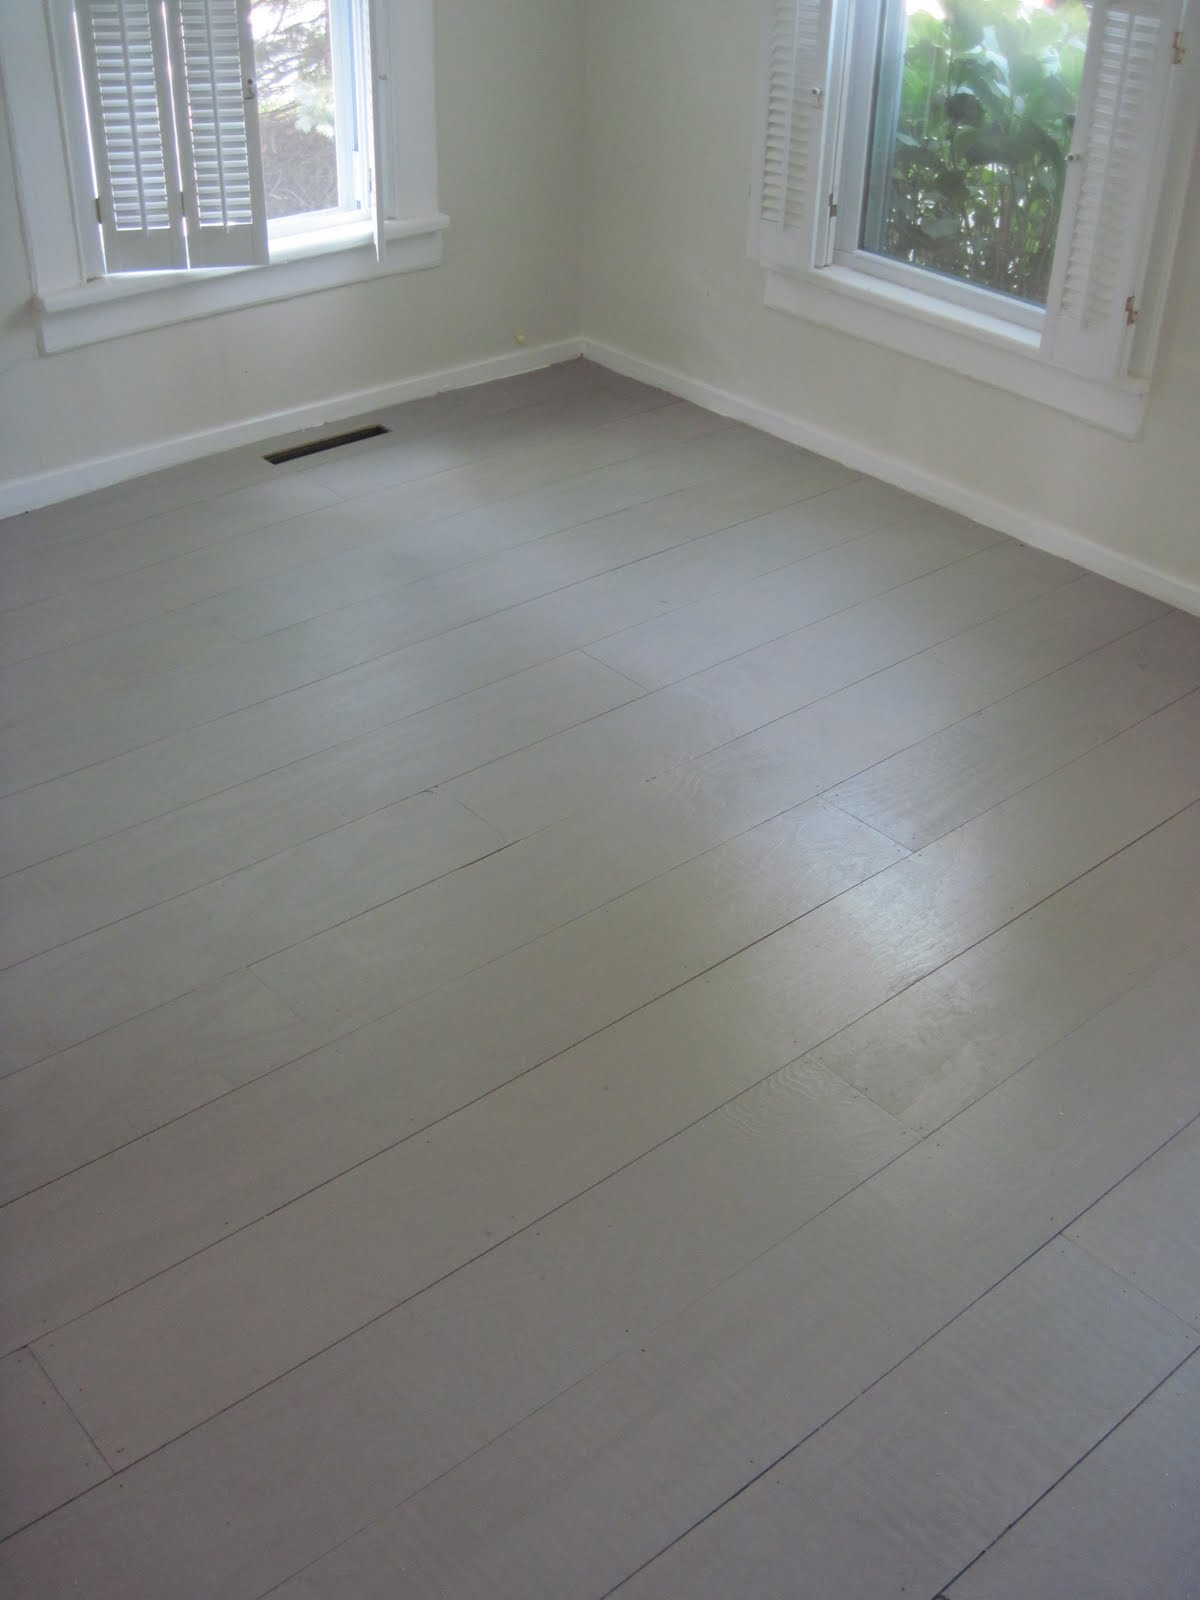 my galician garden plywood flooring On painting plywood floors ideas